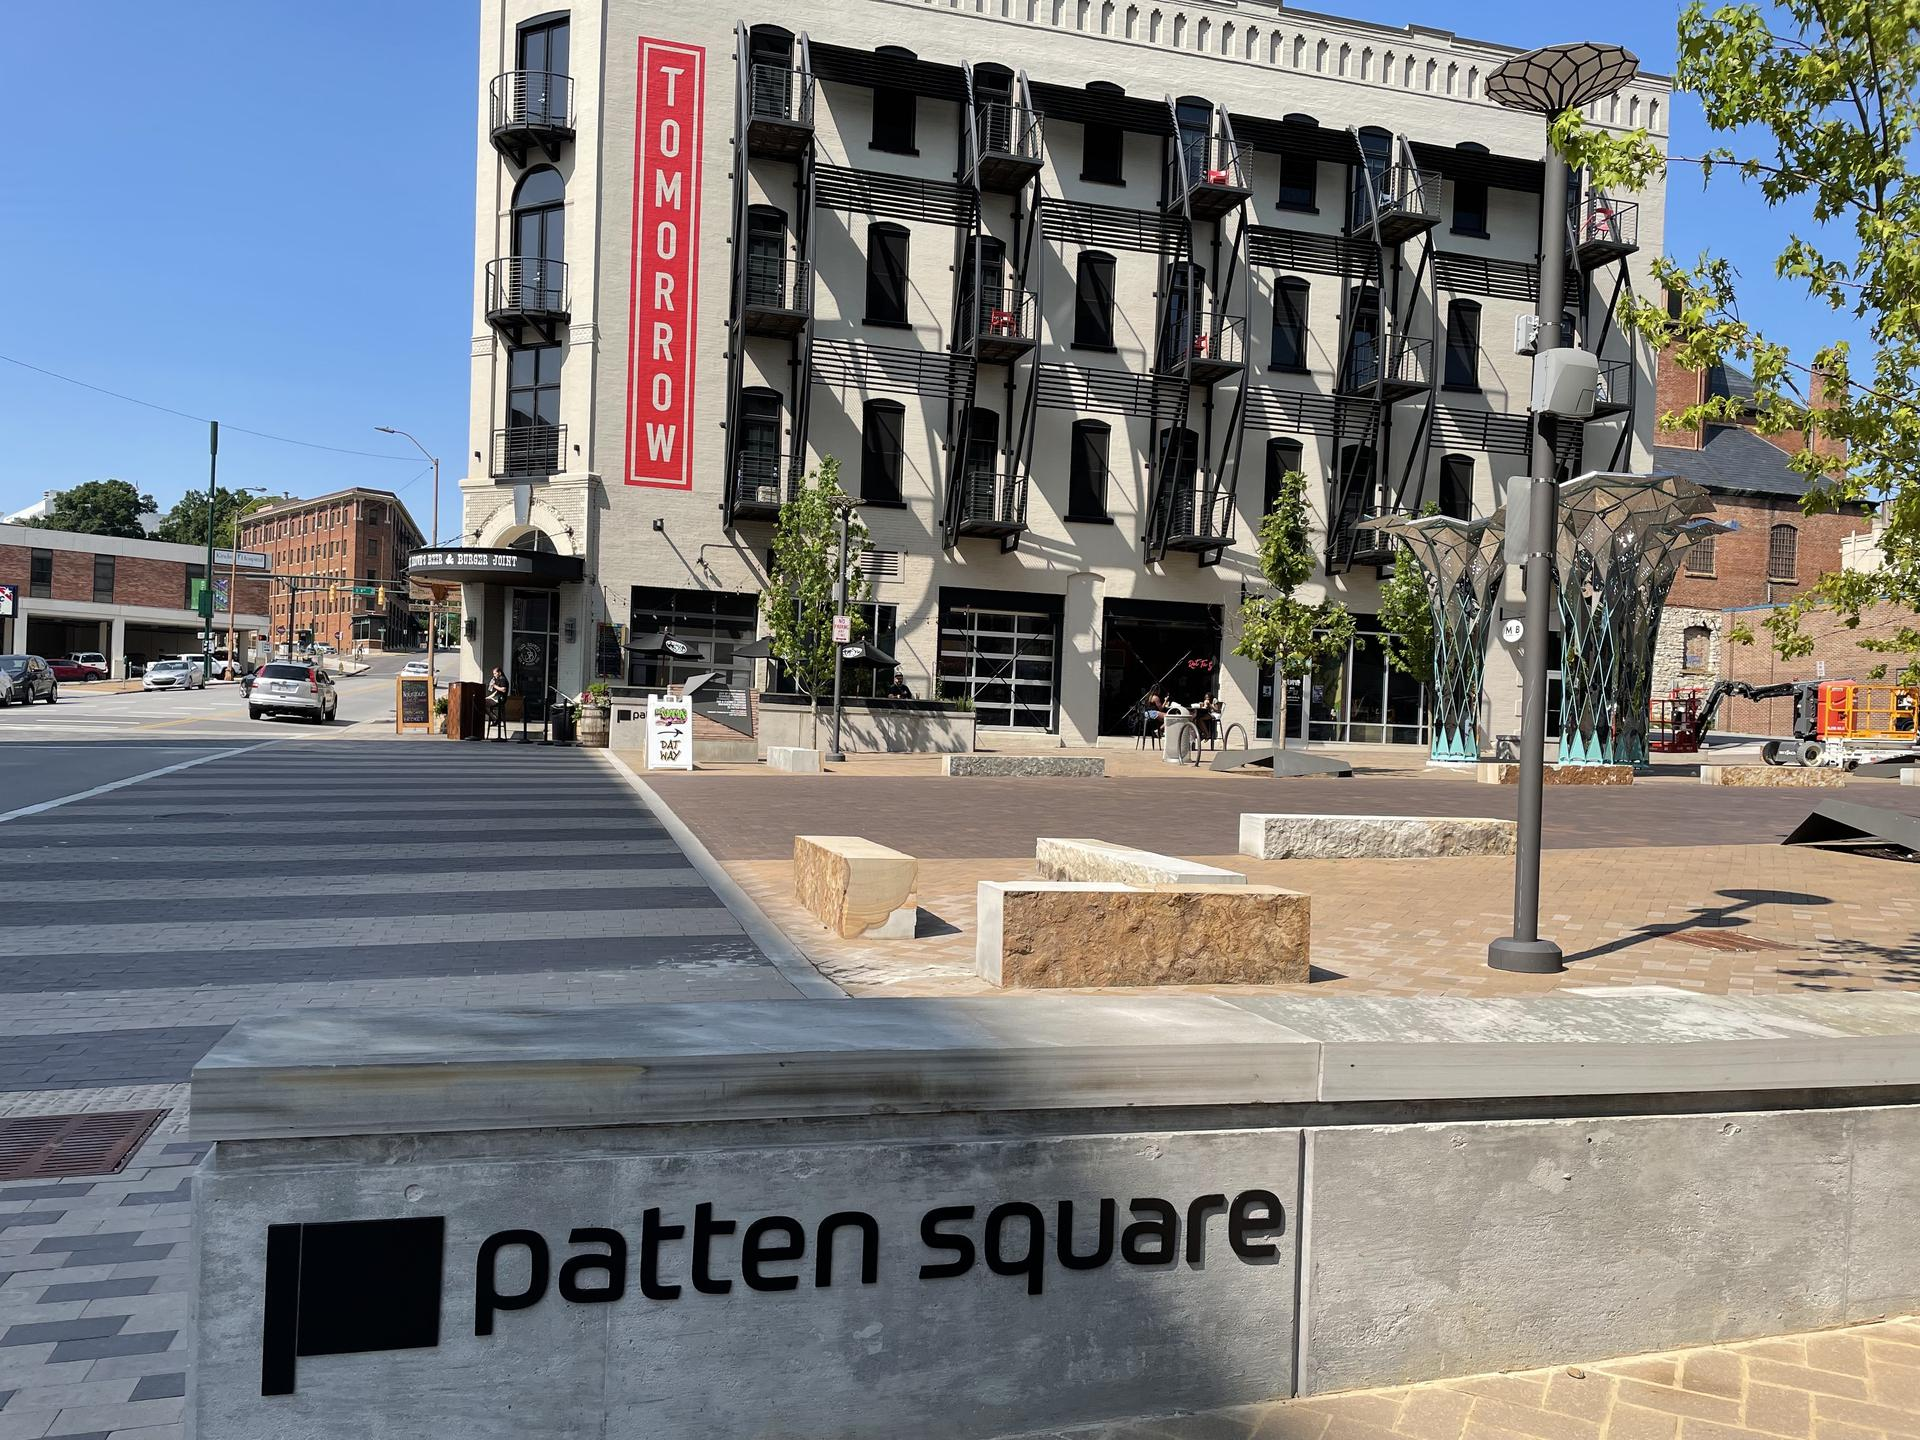 Photo of a stone bench that reads ''Patten Square'' on the side, pictured in front of a street with a large apartment complex on the other side.